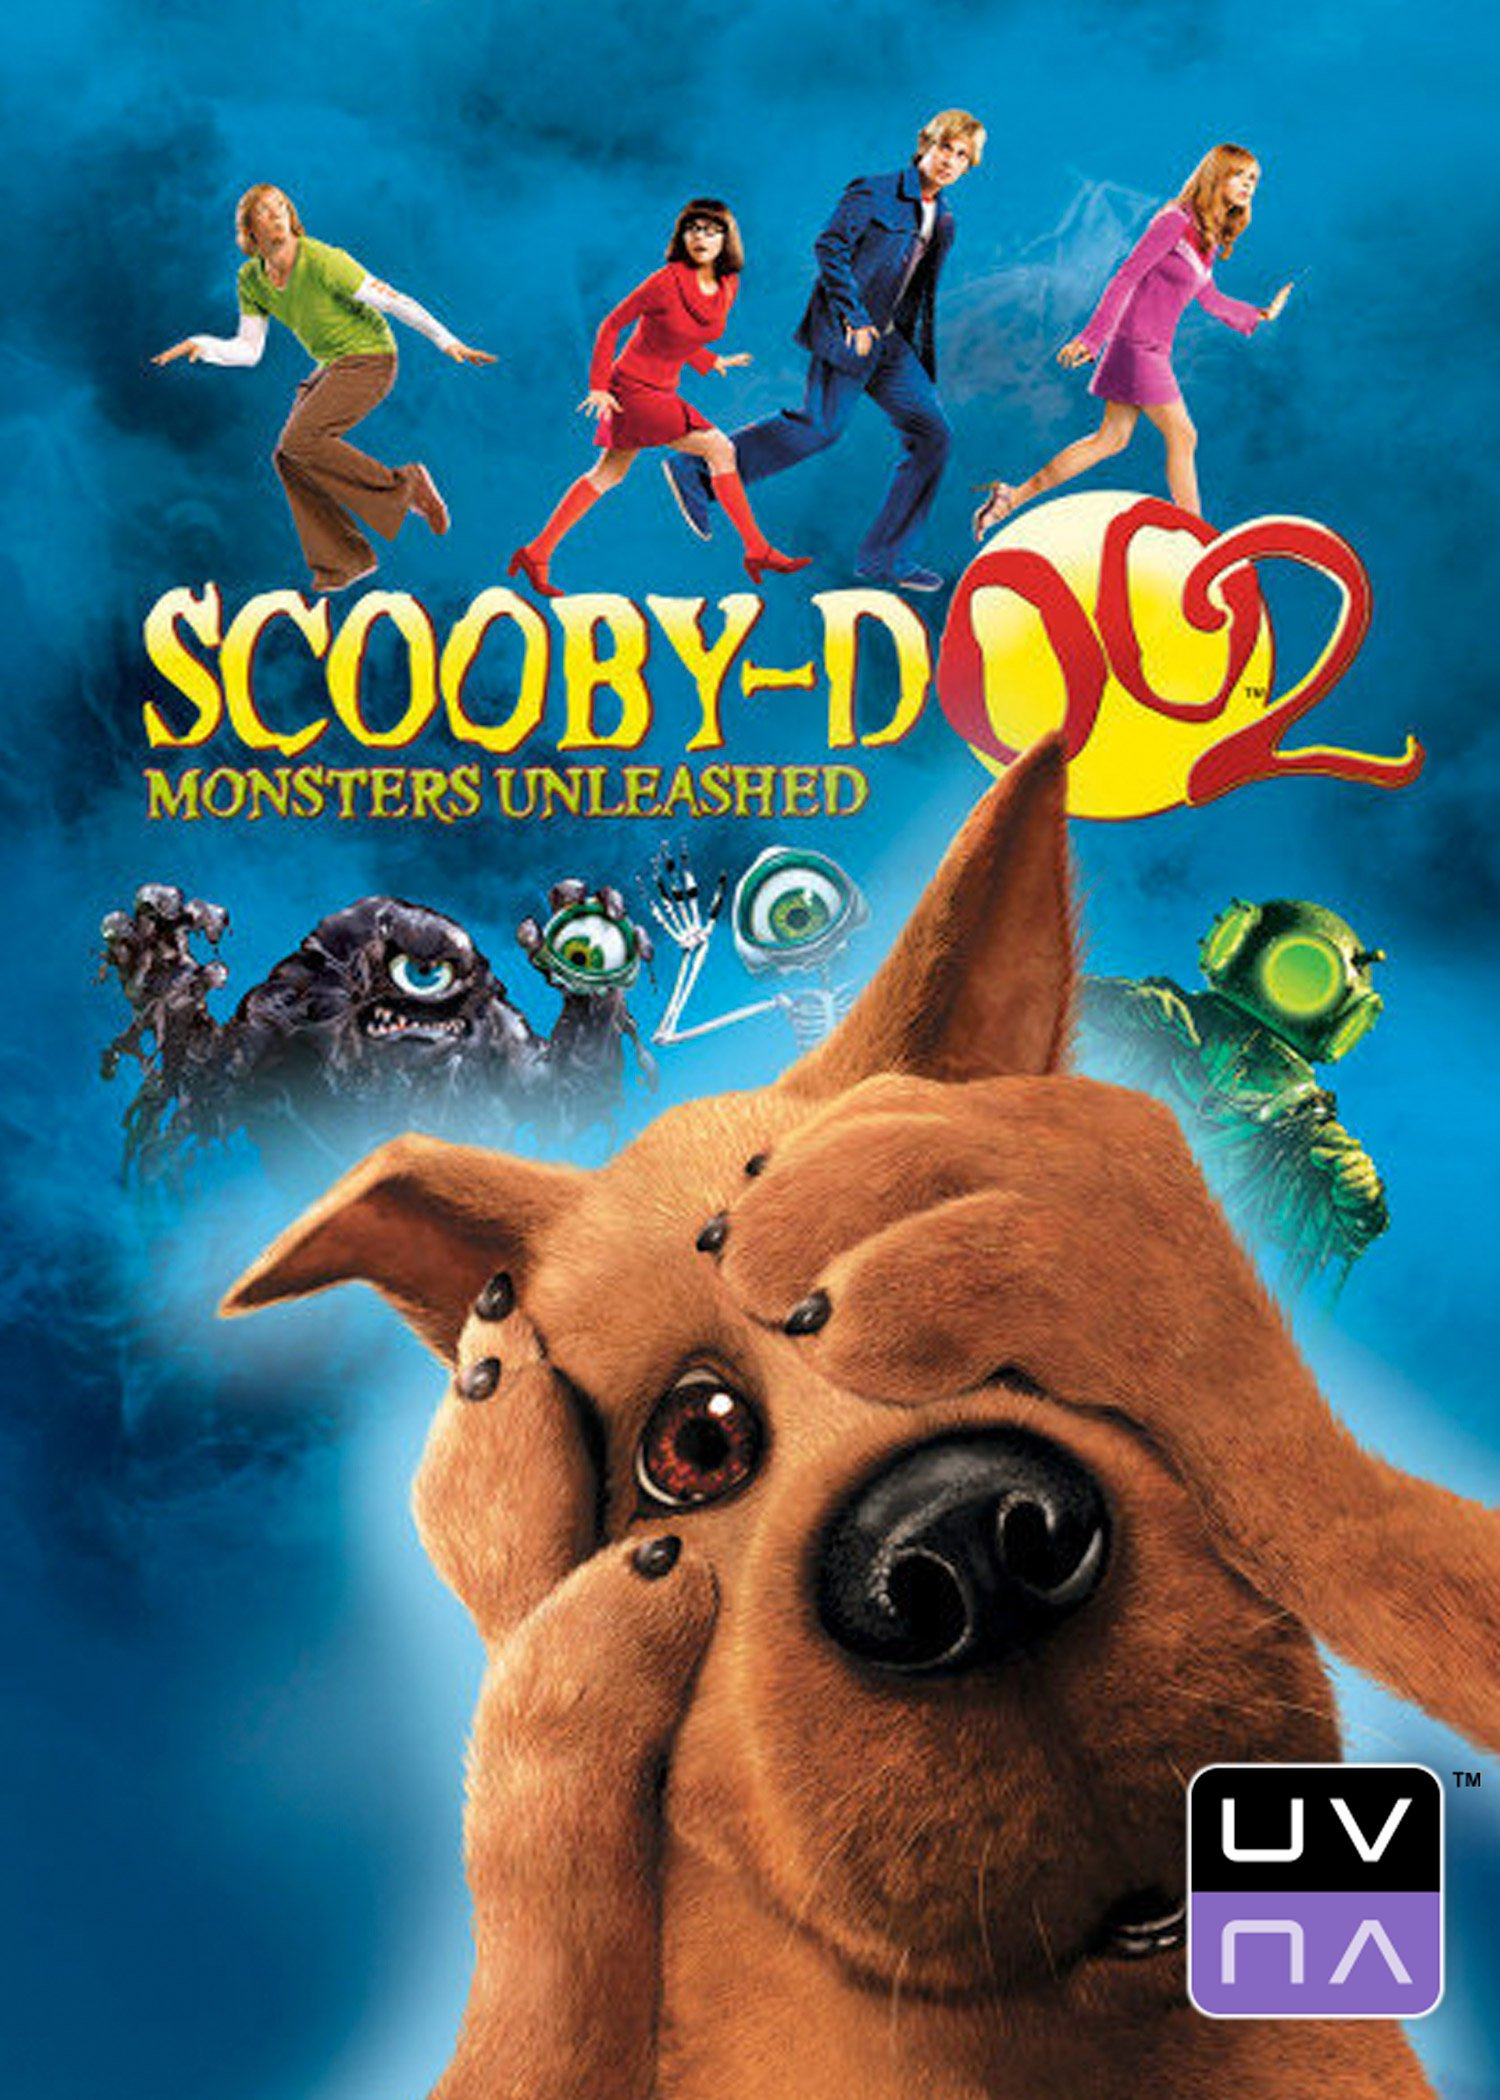 scooby-doo-2-monsters-unleashed